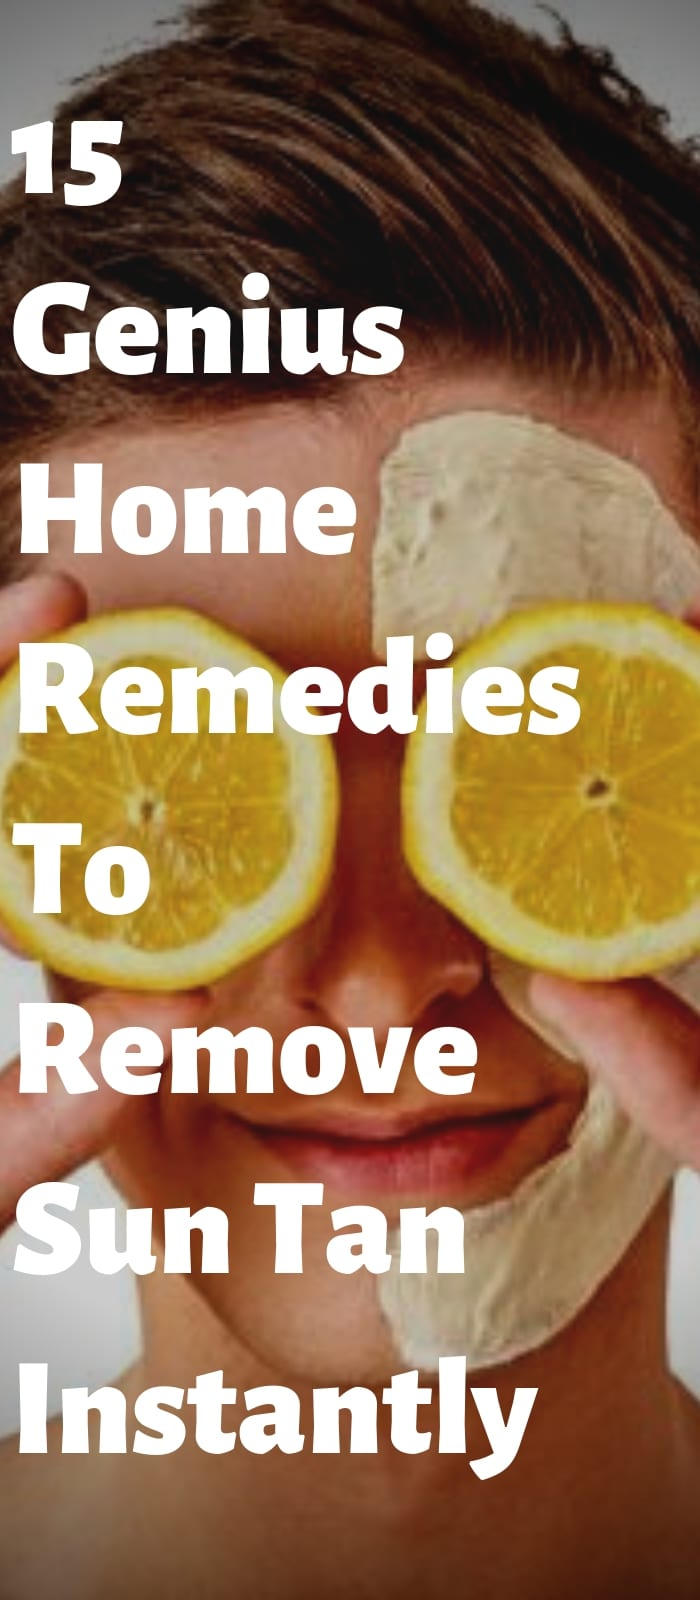 15 Genius Home Remedies To Remove Sun Tan Instantly